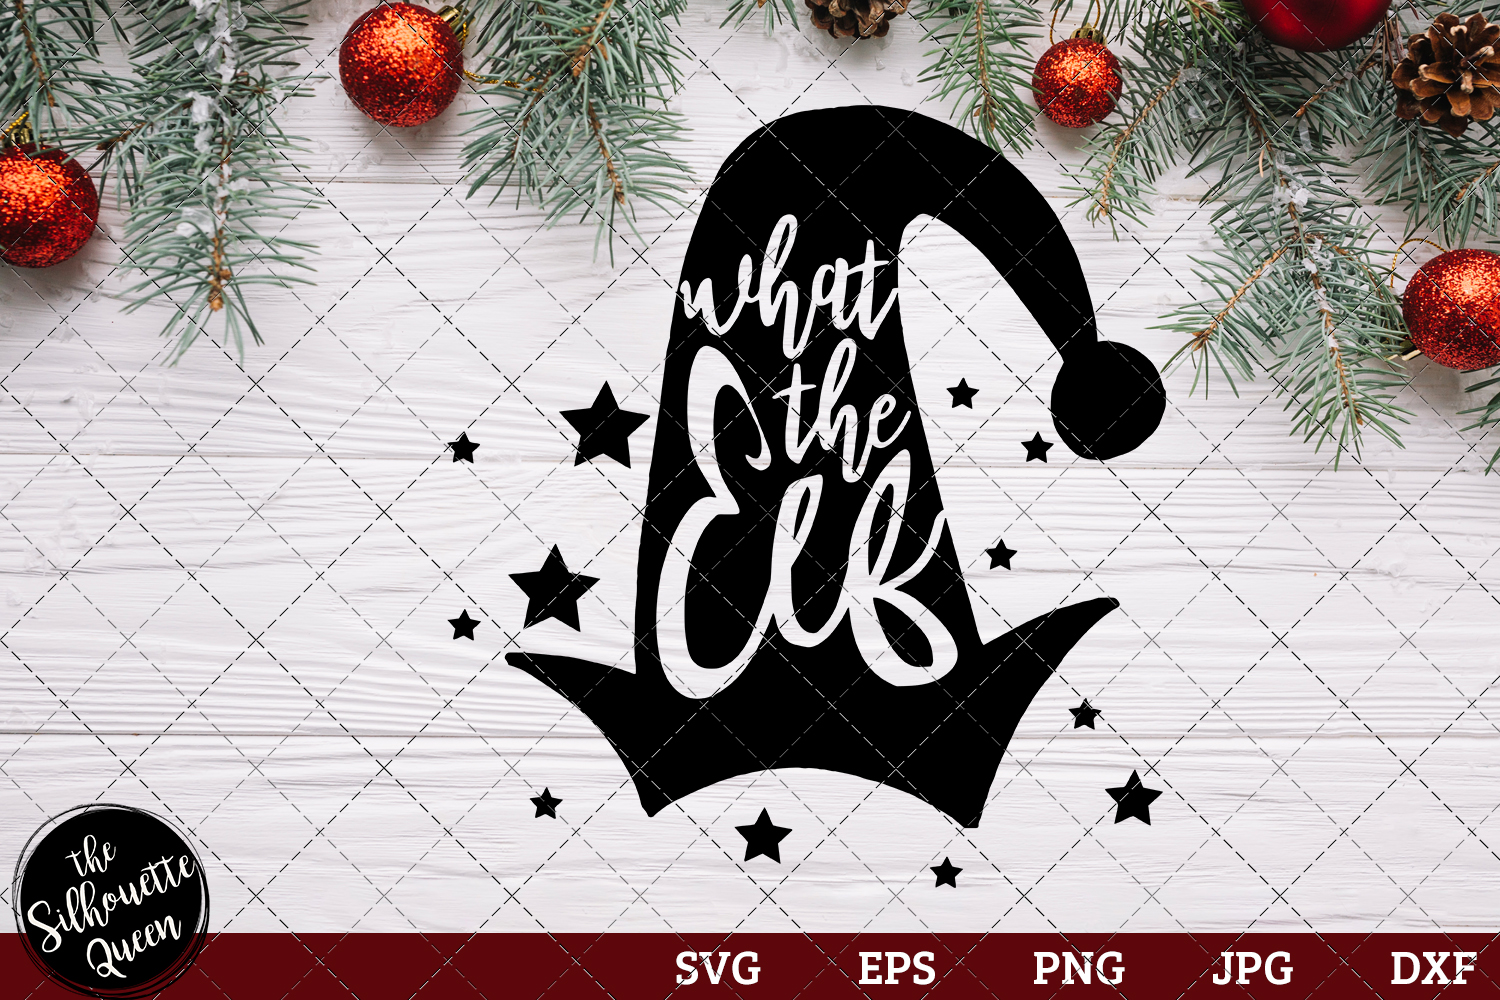 Download Free What The Elf Graphic By Thesilhouettequeenshop Creative Fabrica for Cricut Explore, Silhouette and other cutting machines.